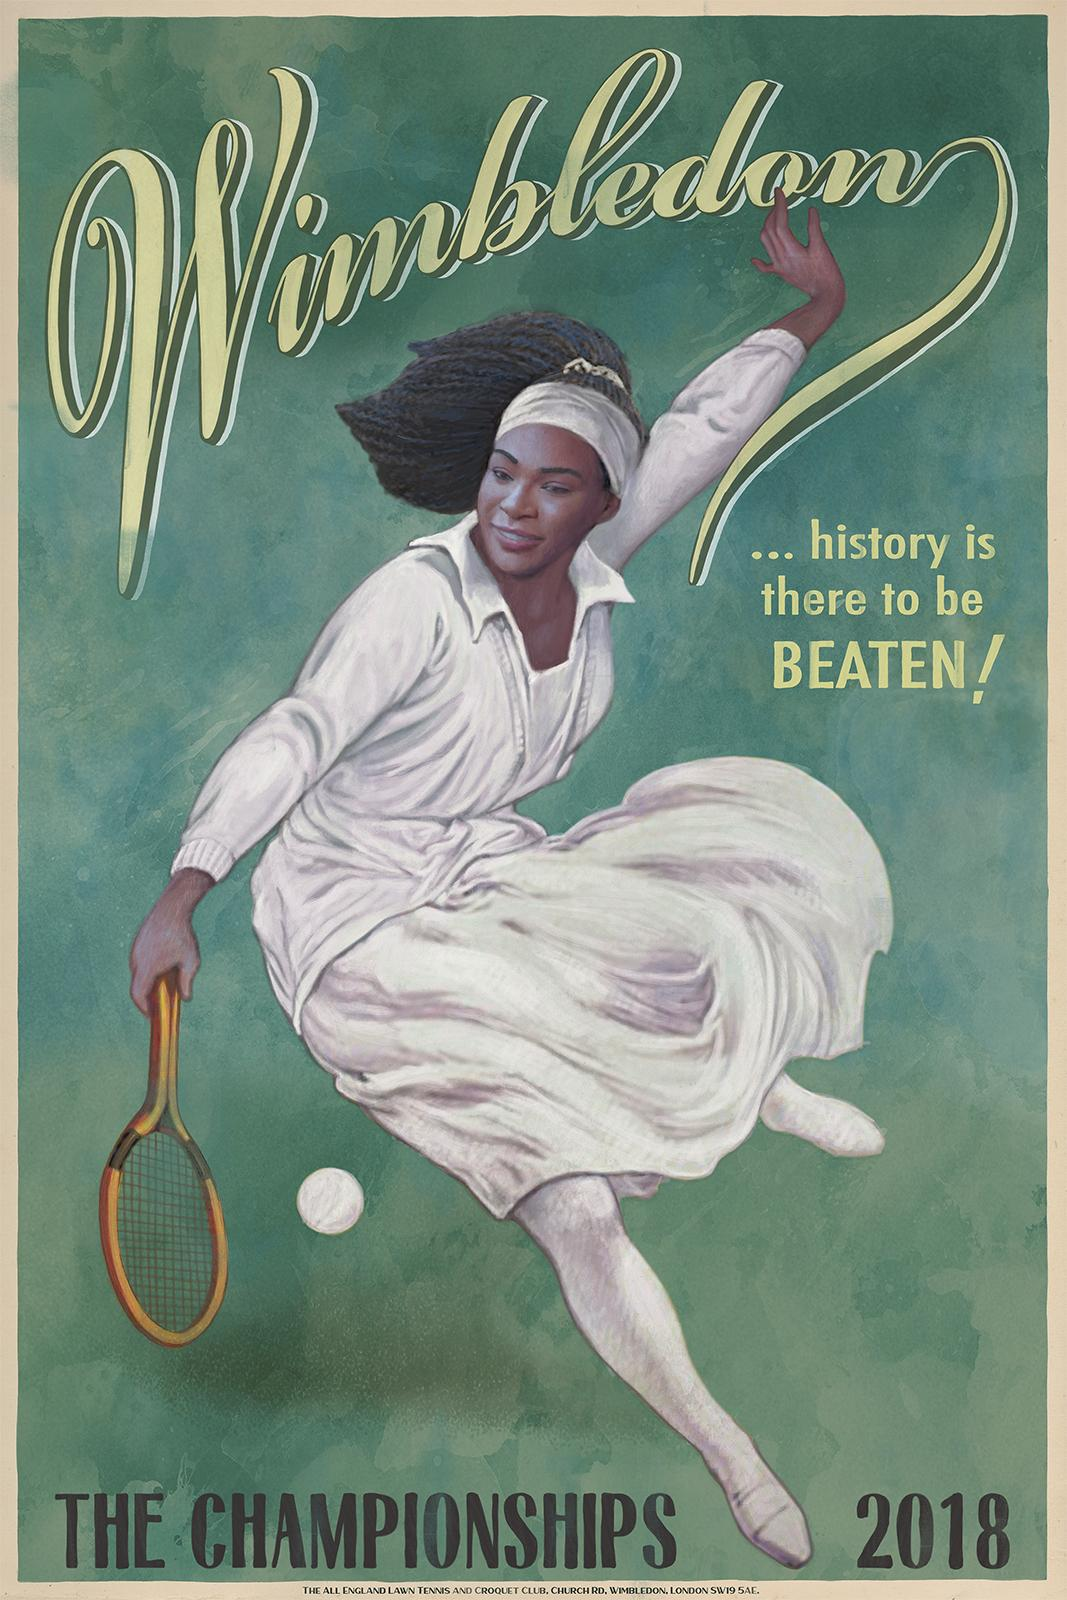 Wimbledon Outdoor Ad - History is There to be Beaten, 2